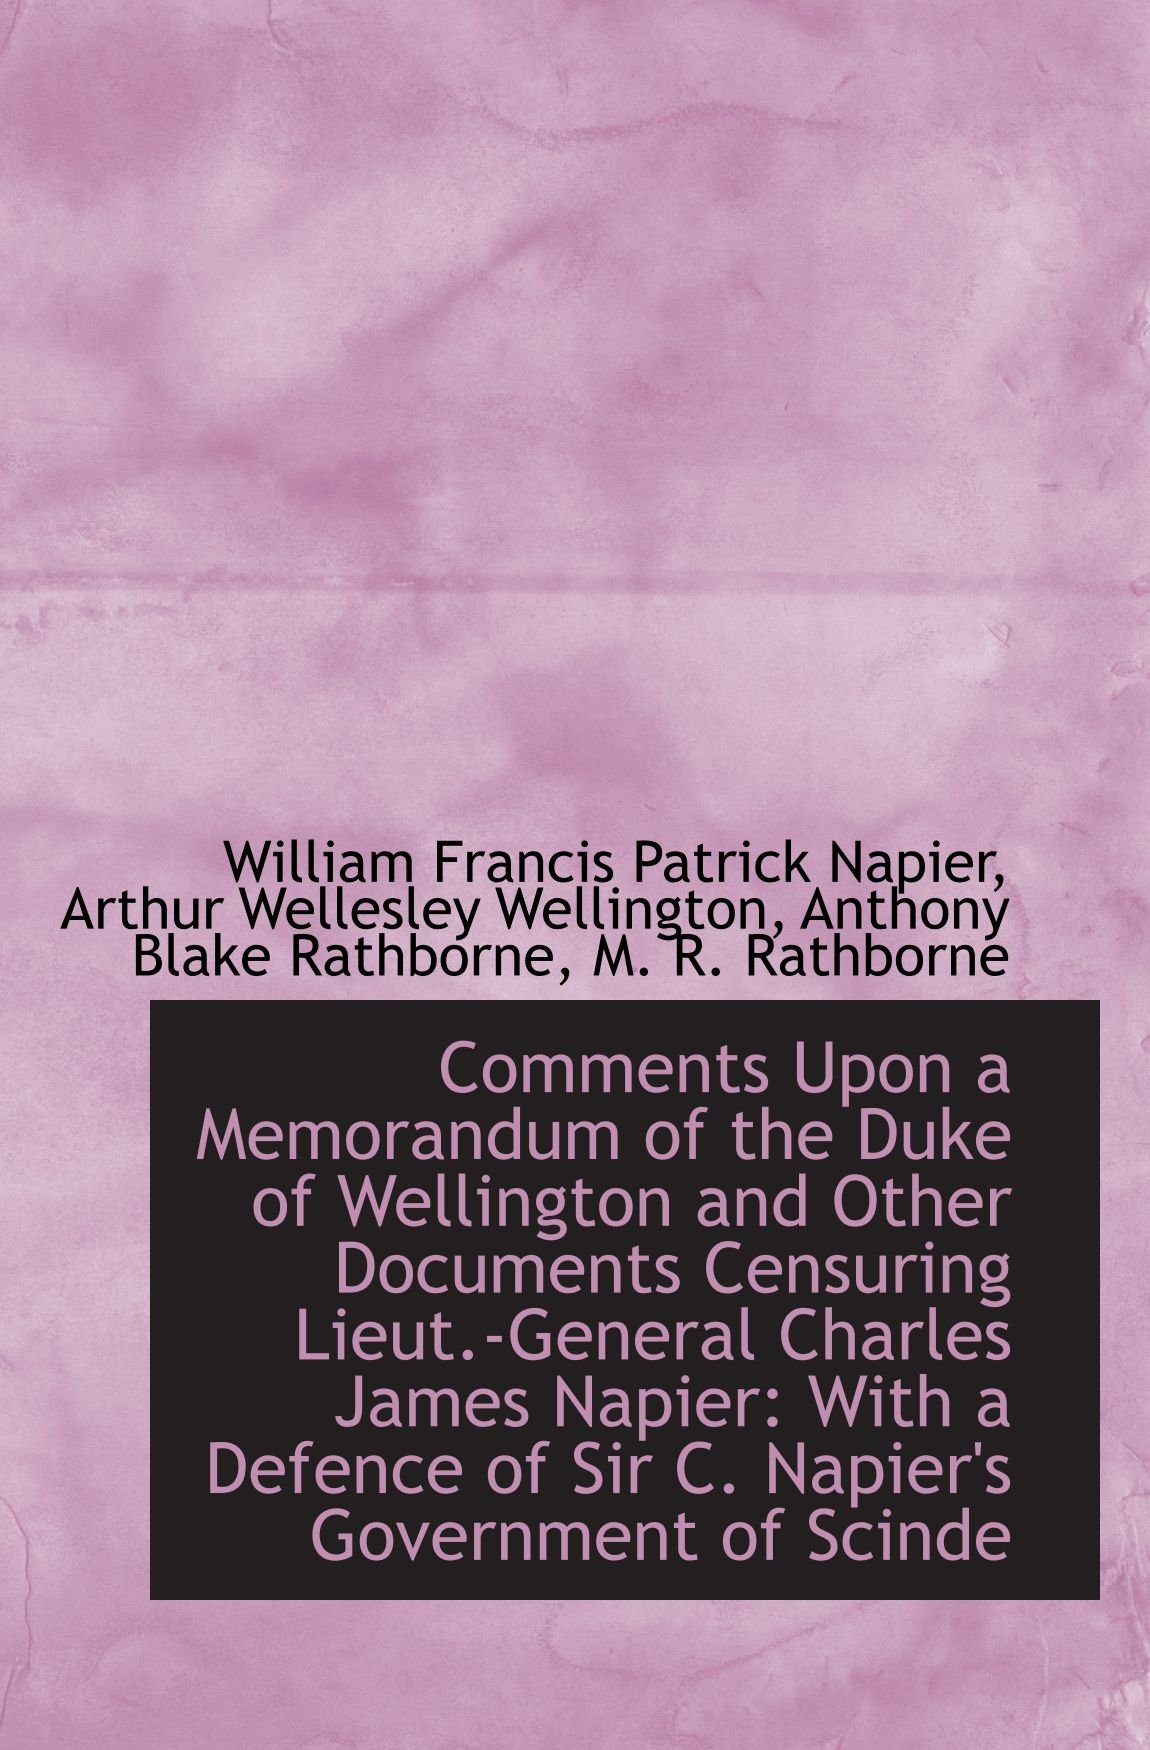 Comments Upon a Memorandum of the Duke of Wellington and Other Documents Censuring Lieut.-General Ch pdf